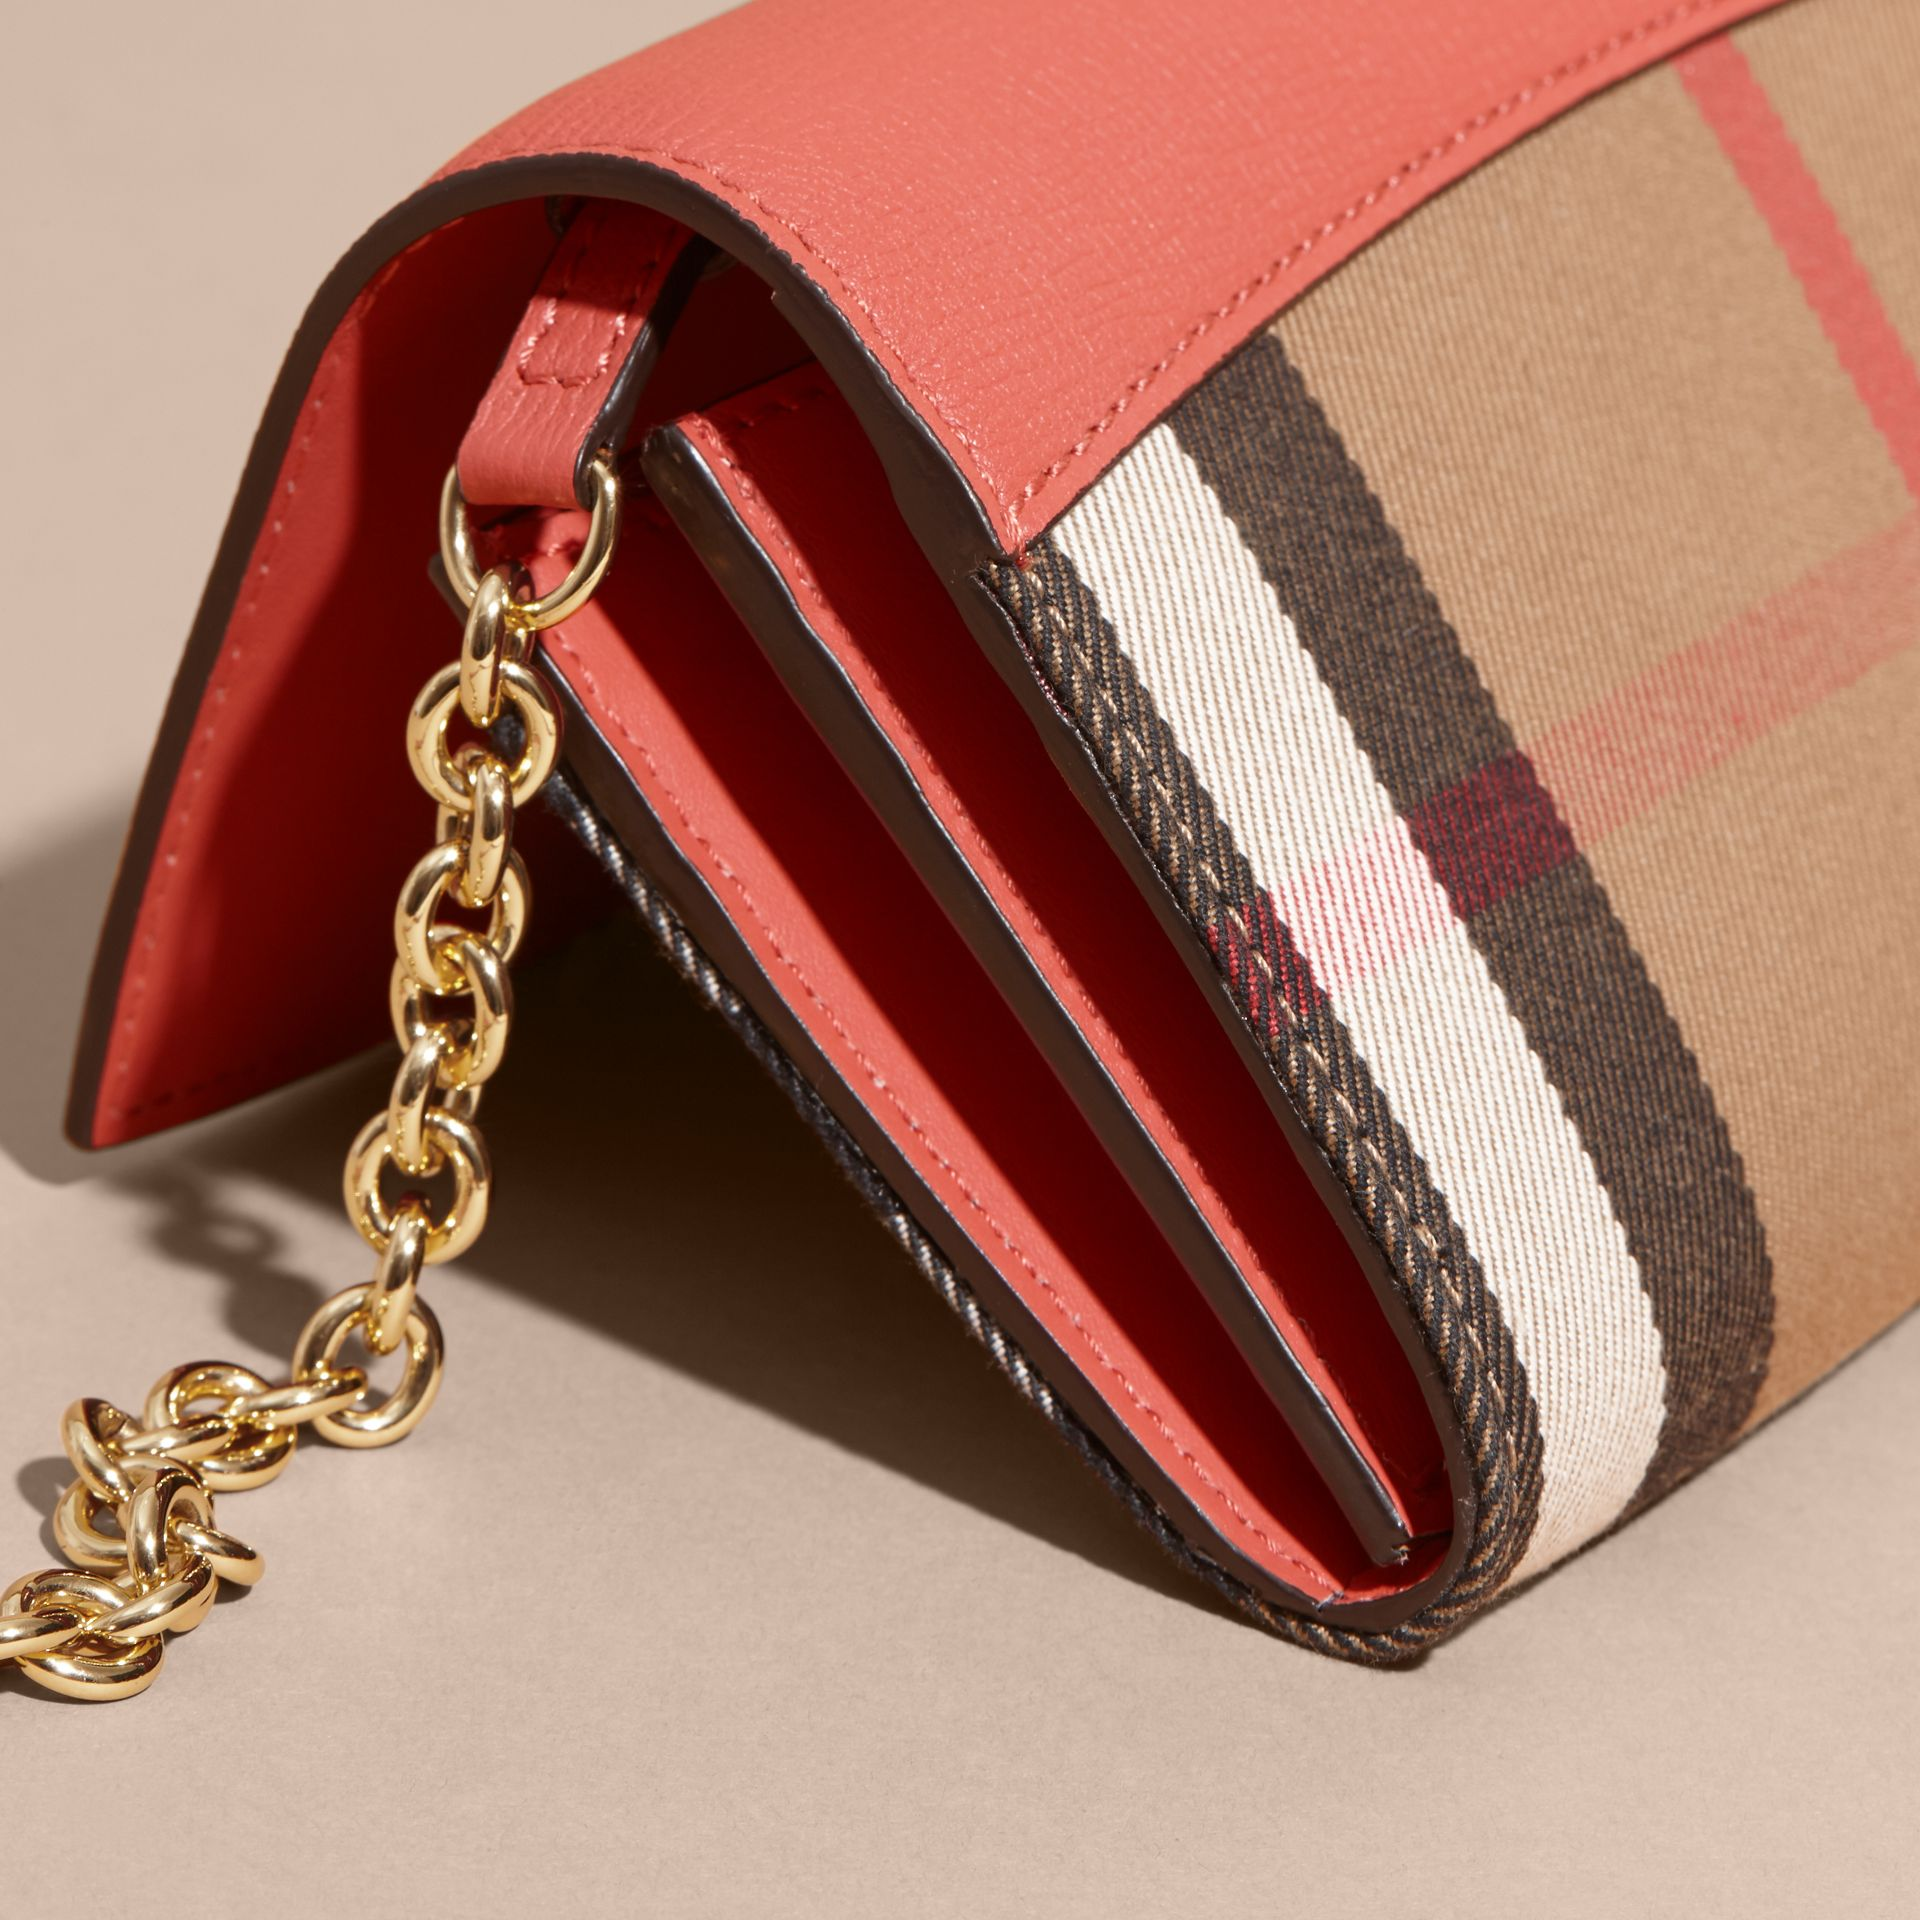 House Check and Leather Wallet with Chain in Cinnamon Red - Women | Burberry Canada - gallery image 6